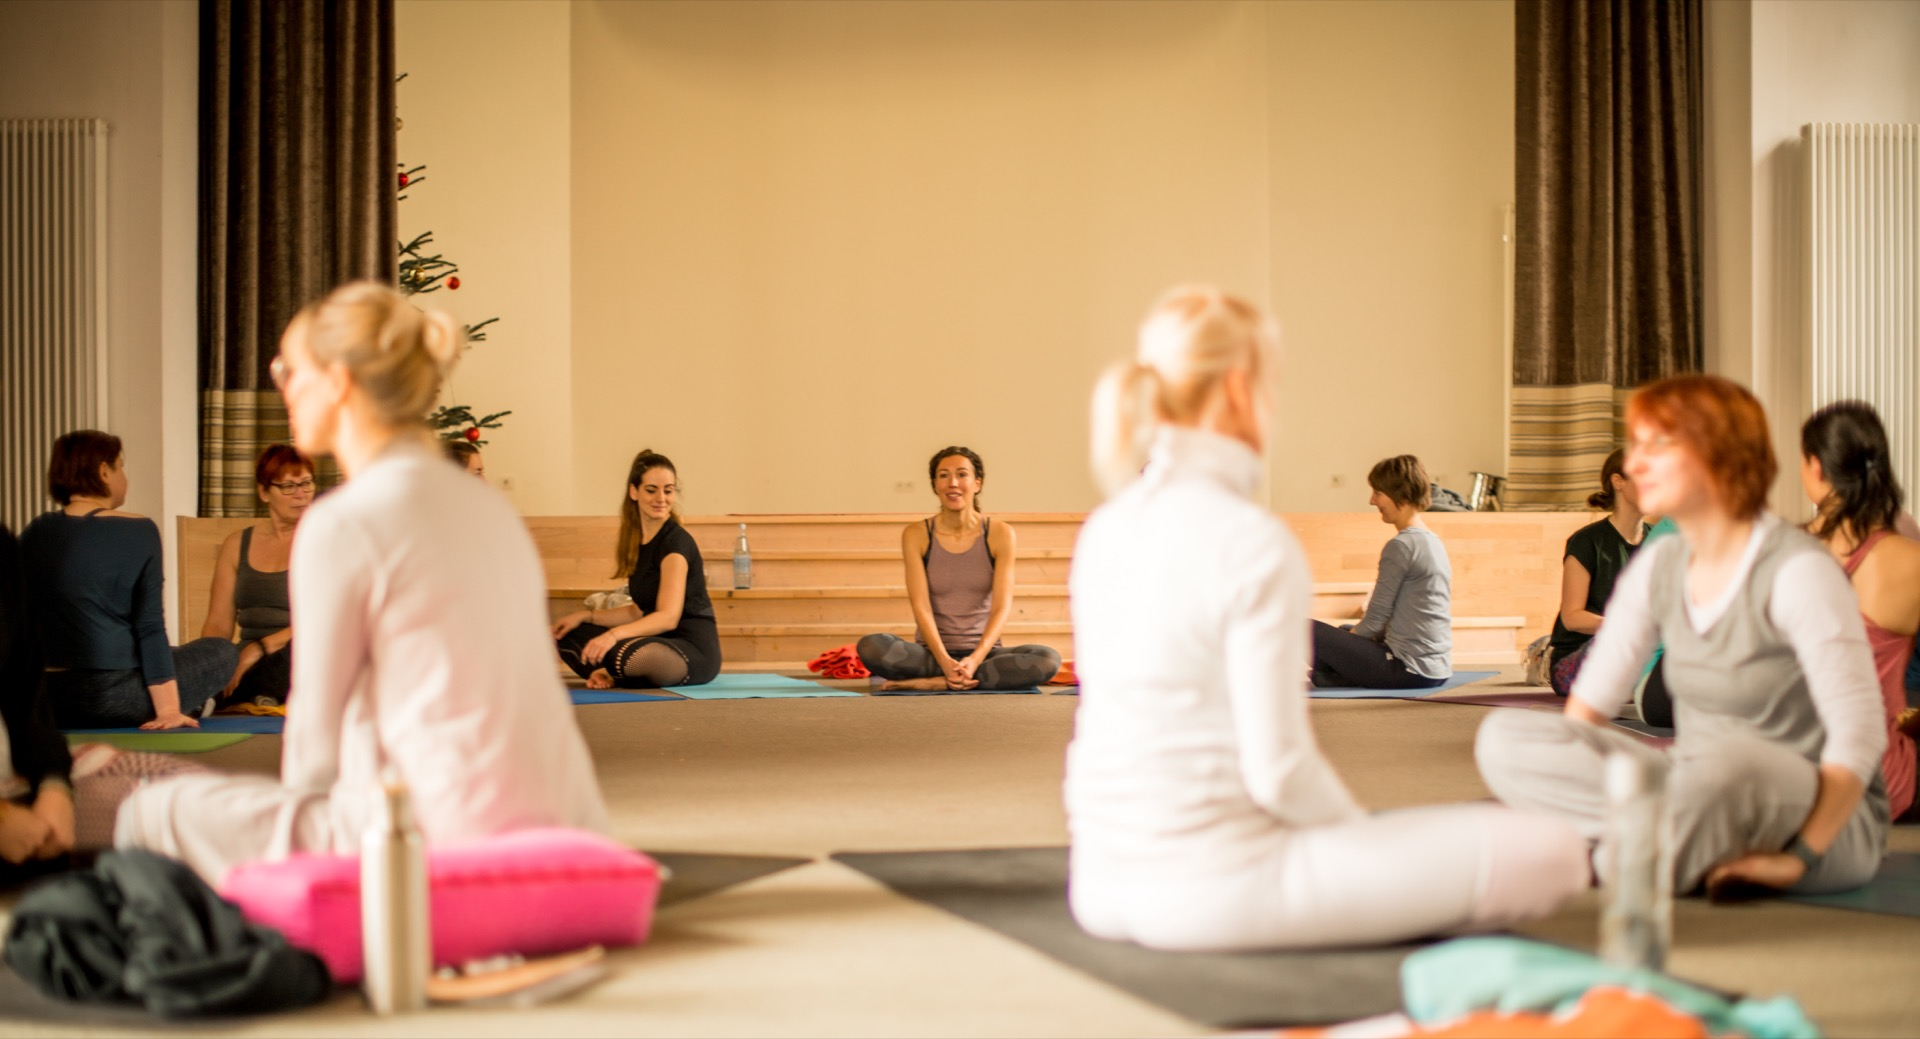 A-New-Beginning-Hie-Kim-Yoga-Retreat-Alina-Matis-Photography-003 - Hie Kim Yoga - Yoga Retreat - Yoga Workshops und Reisen